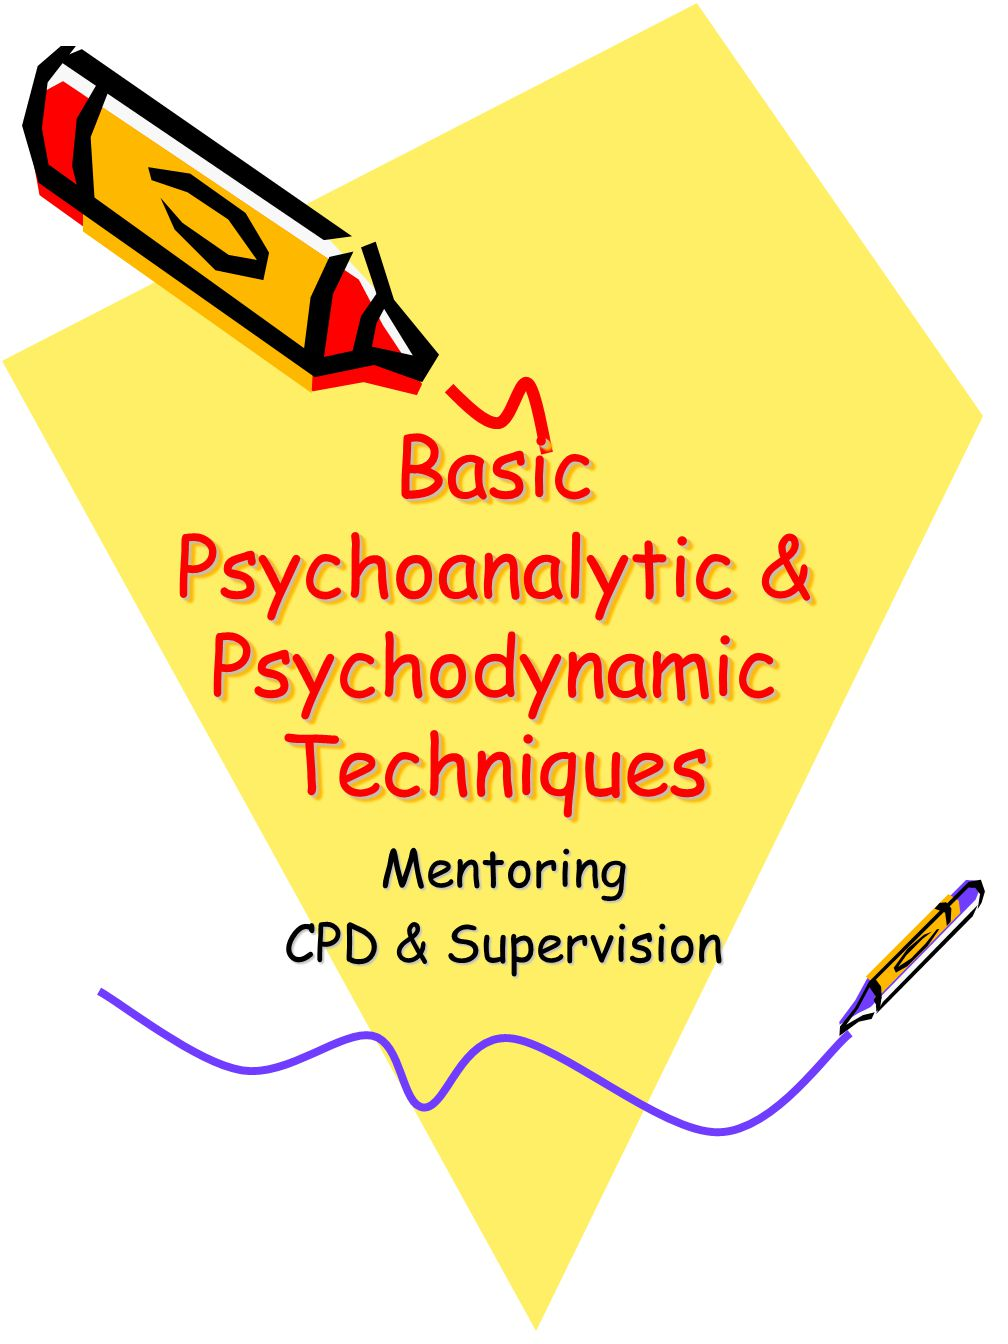 Basic Psychoanalytic & Psychodynamic Techniques Mentoring CPD & Supervision